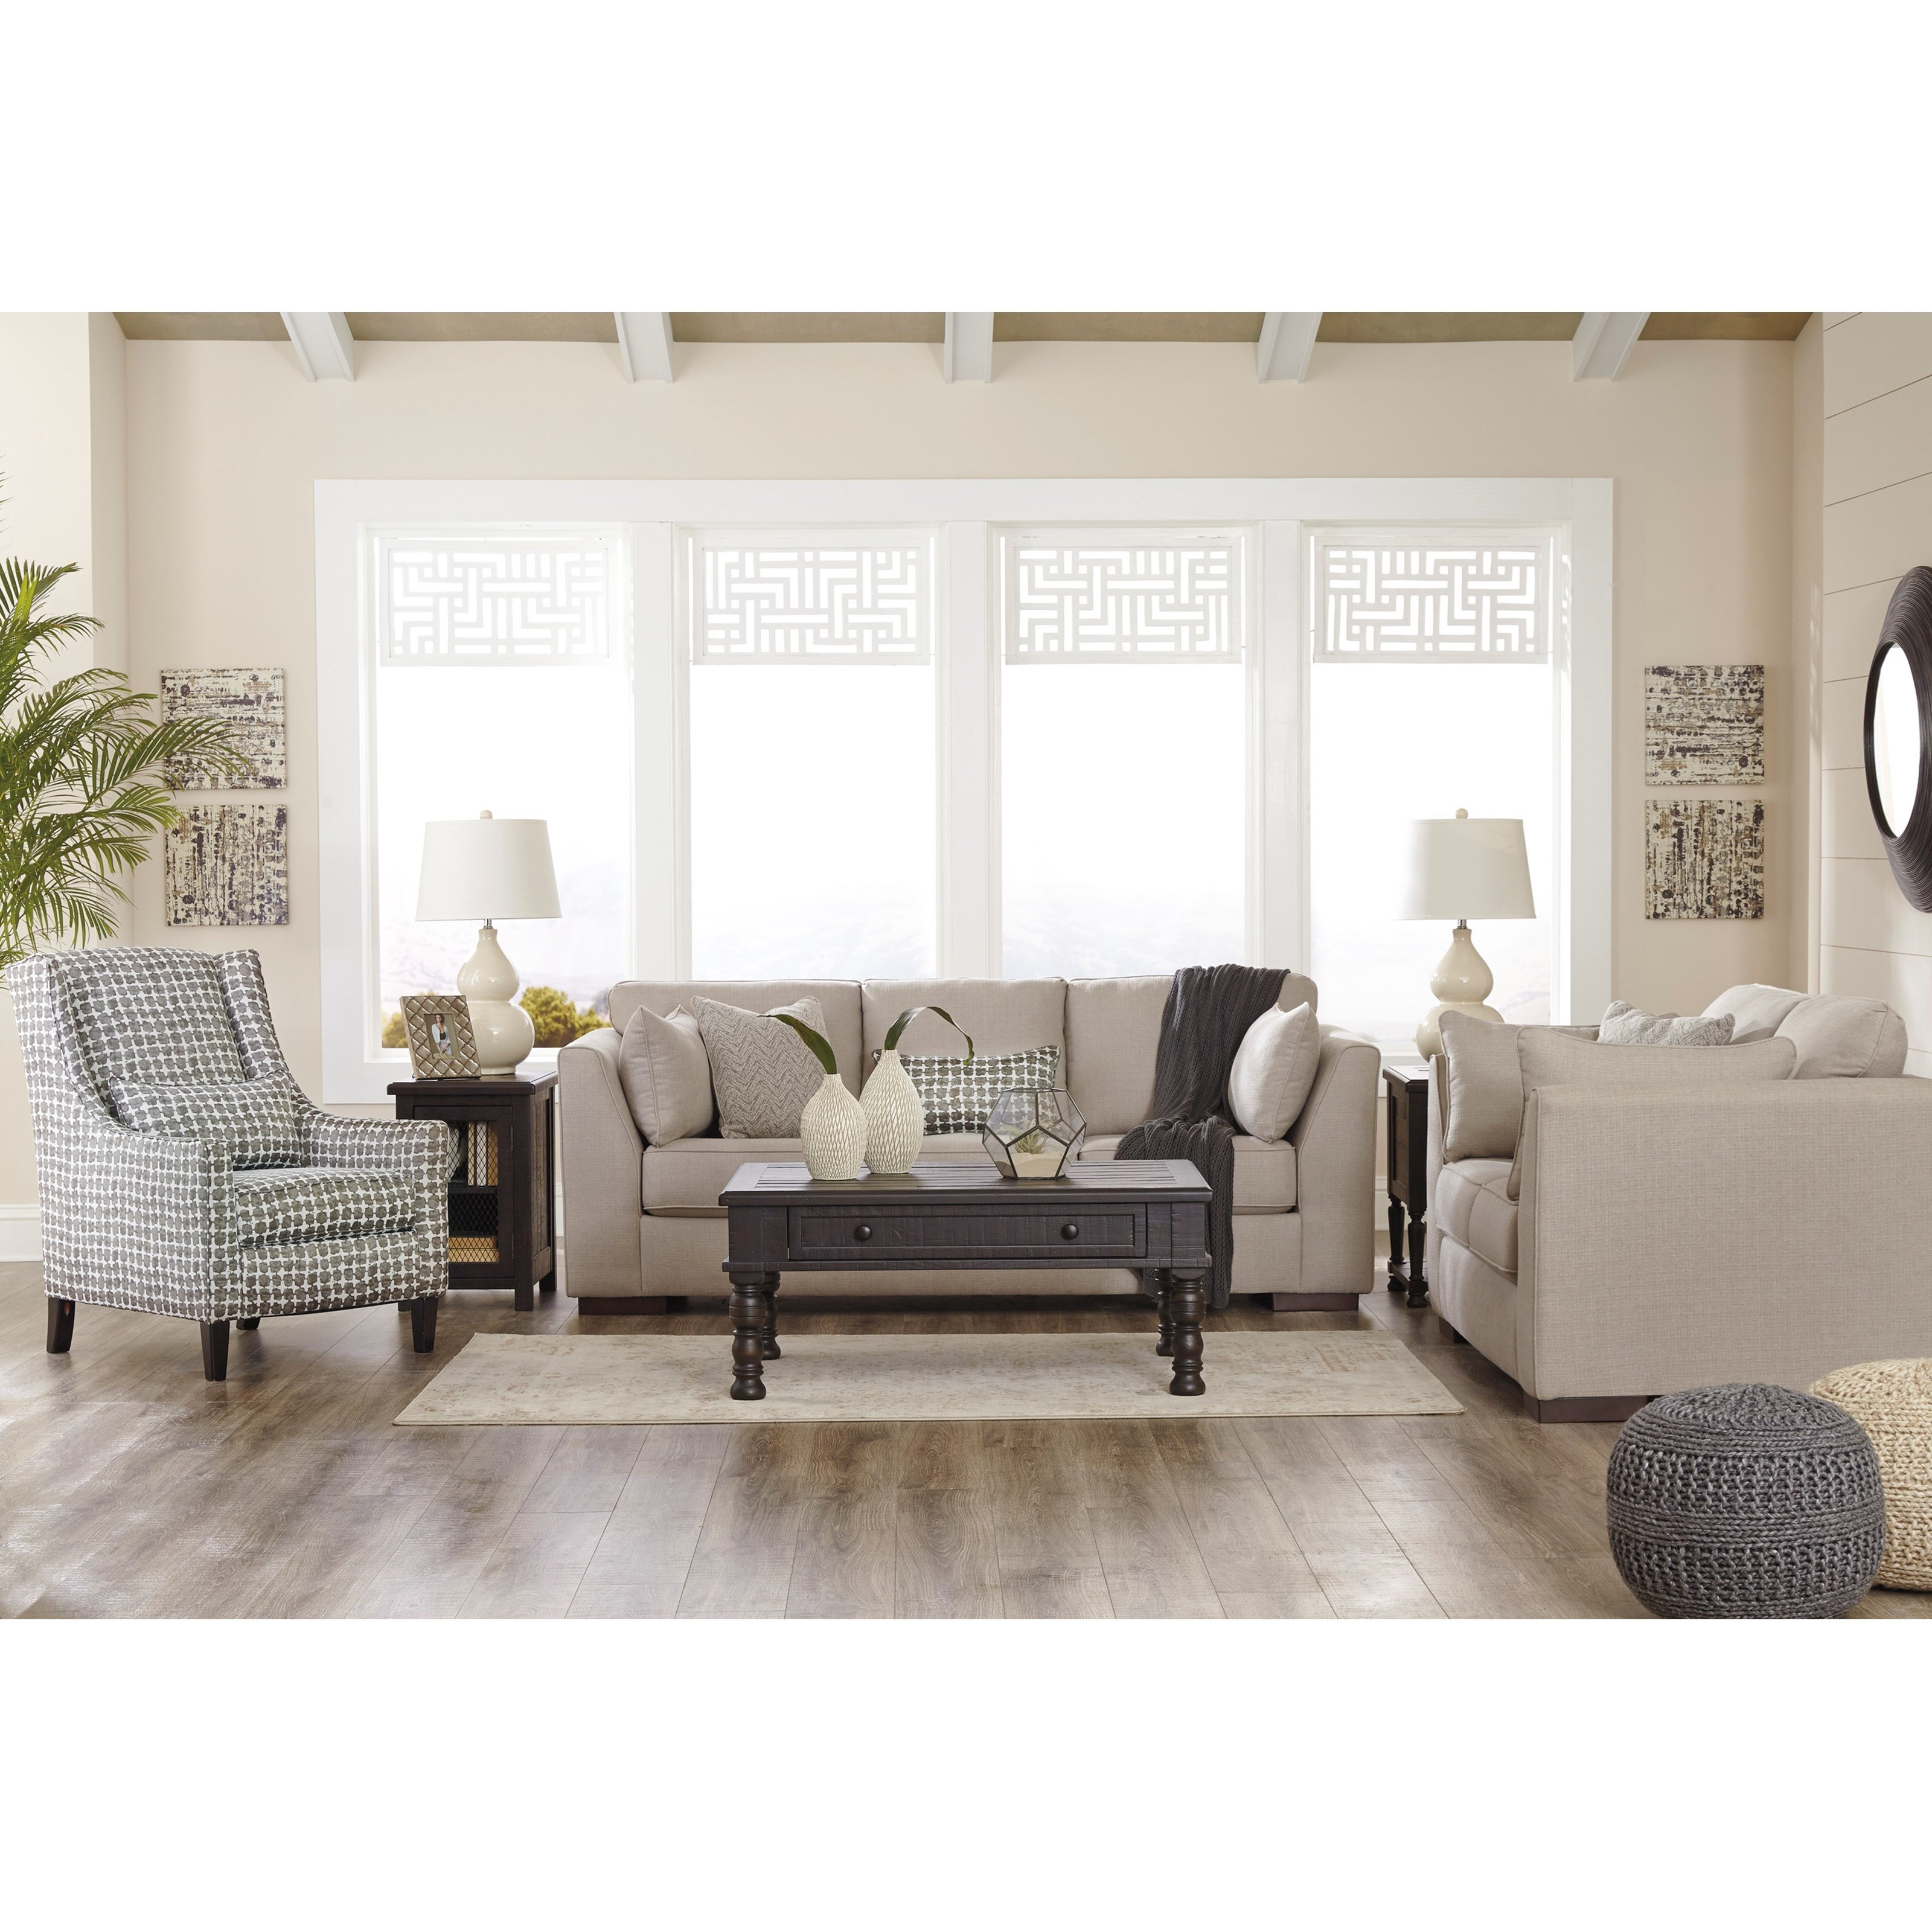 Benchcraft Lainier Stationary Living Room Group - Item Number: 54202 Living Room Group 2